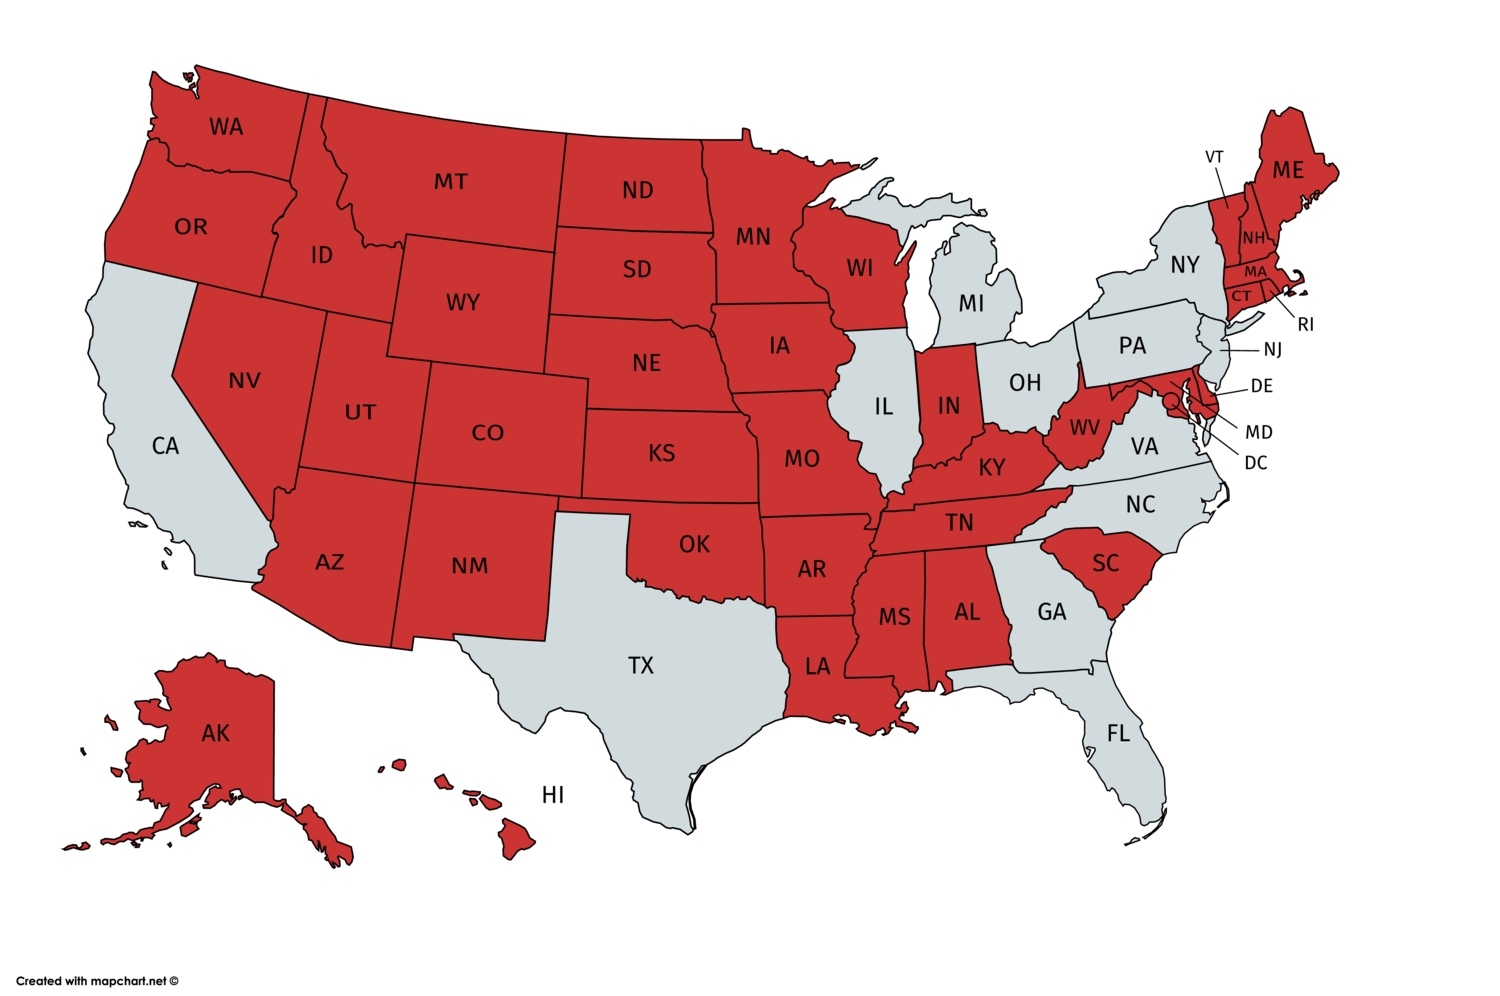 States with a smaller population than New York City